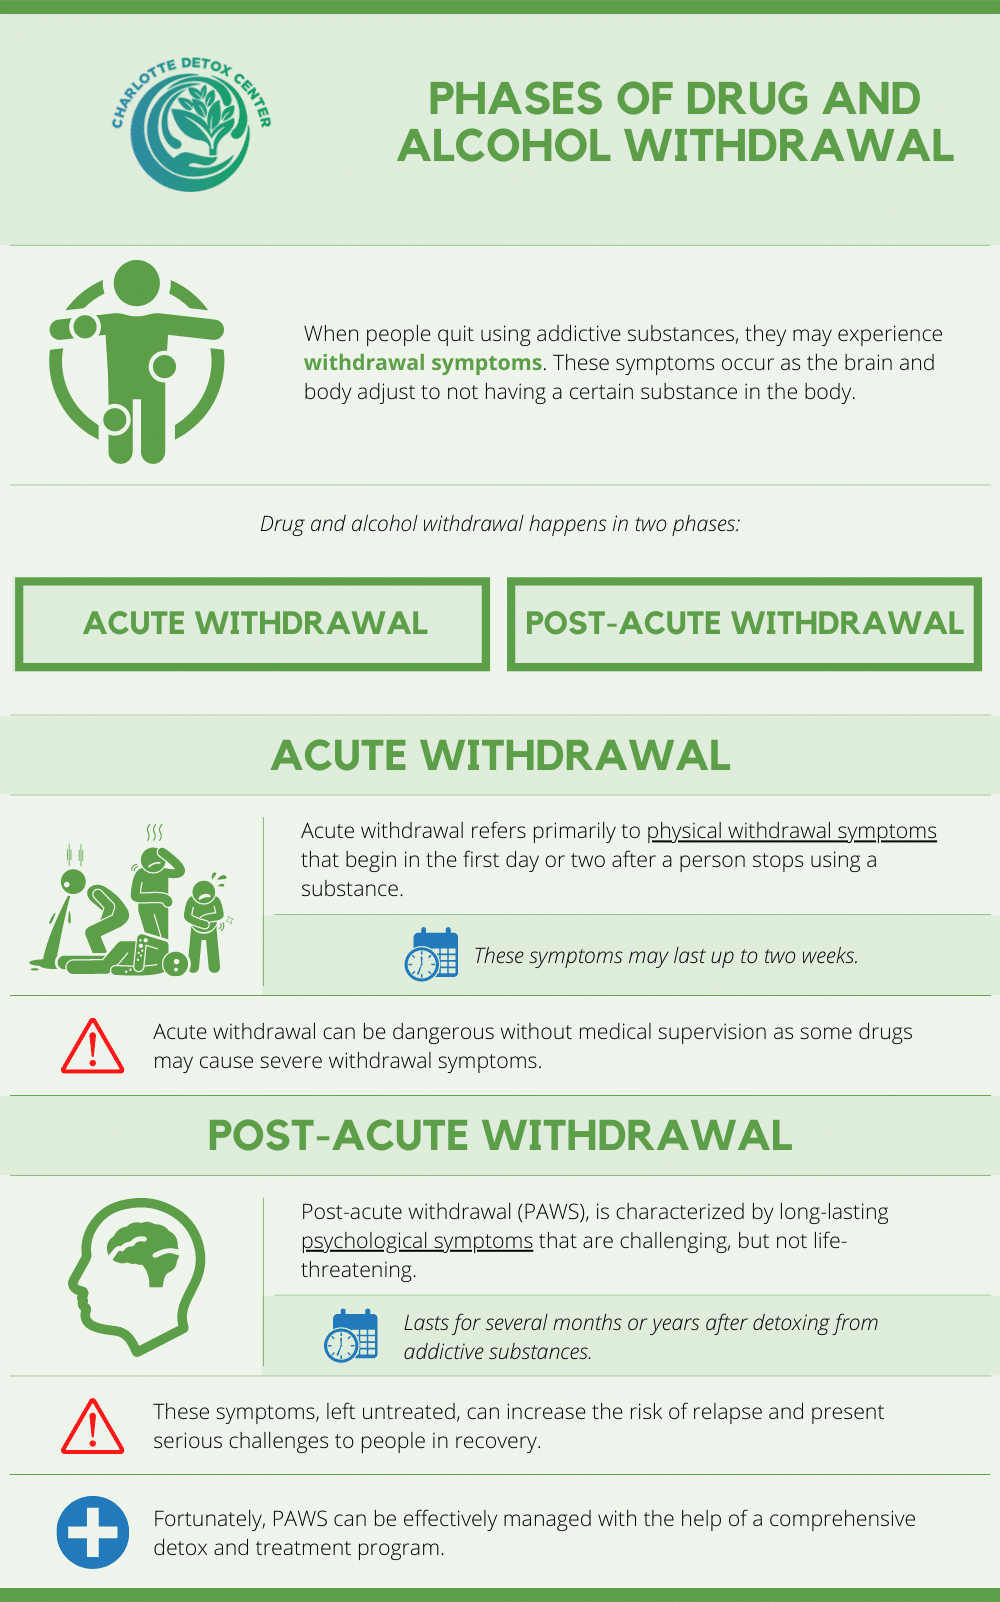 phases of Drug and alcohol withdrawal